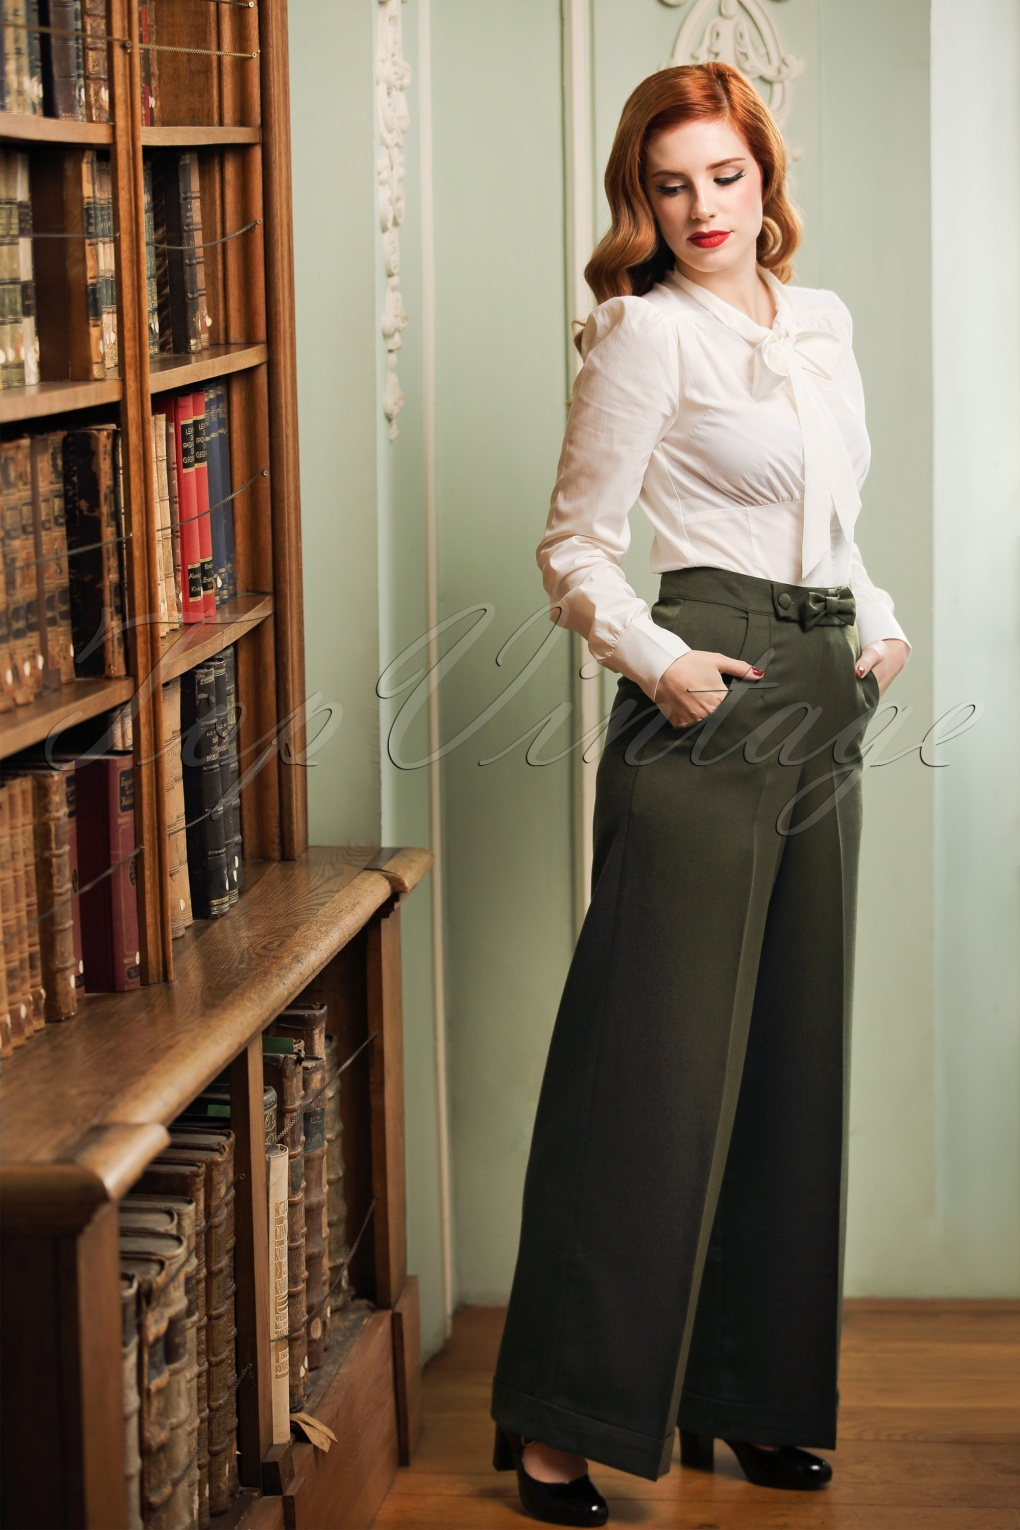 1940s Swing Pants & Sailor Trousers- Wide Leg, High Waist 40s Mindy Hide Away Trousers in Olive Green £32.34 AT vintagedancer.com